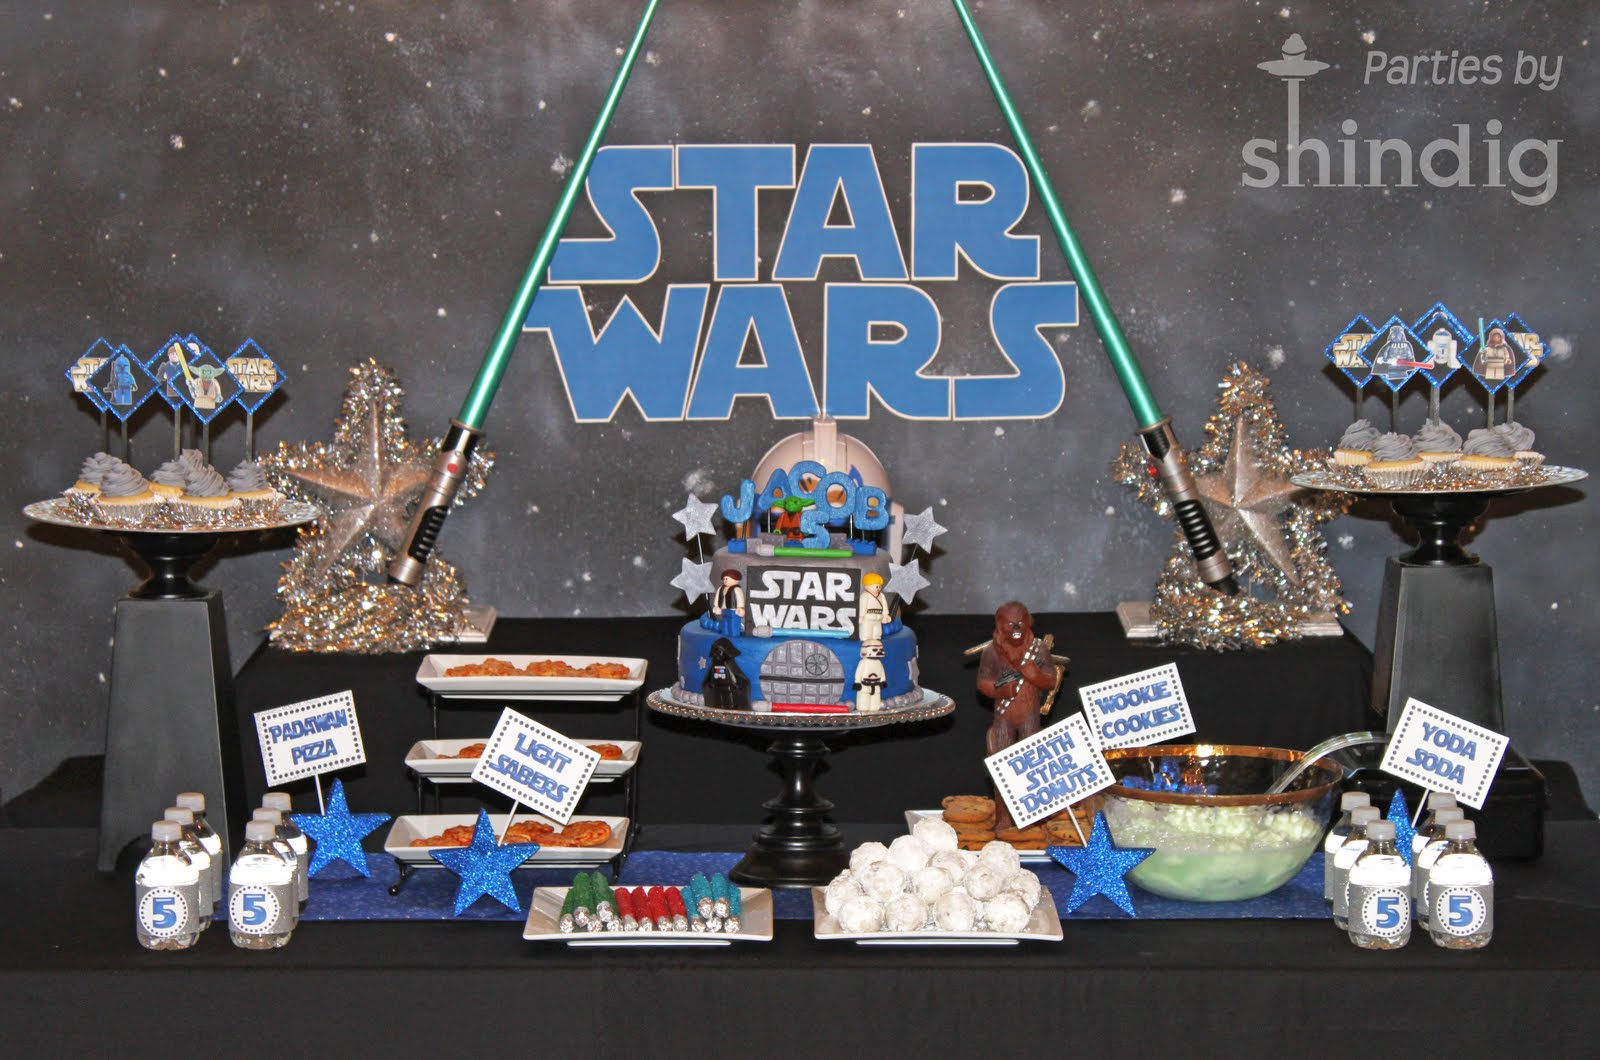 Star Wars Decorations Ideas Amanda 39s Parties To Go Star Wars Party Details